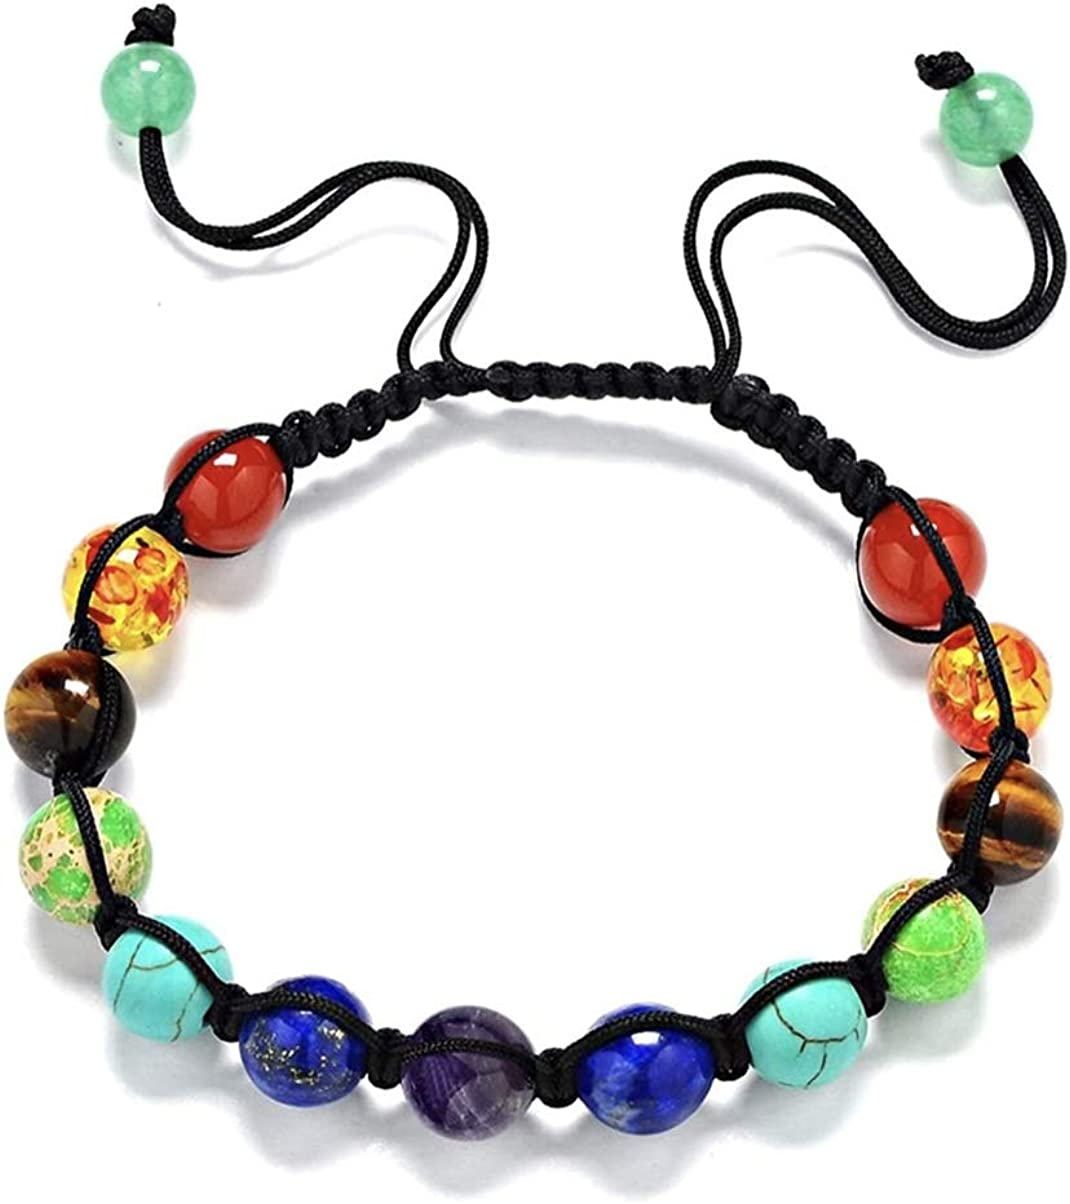 MARBEN'S Top Handmade 7 Chakra bracelet Healing Crystal Meditation Relax Anxiety For Women's and Mens